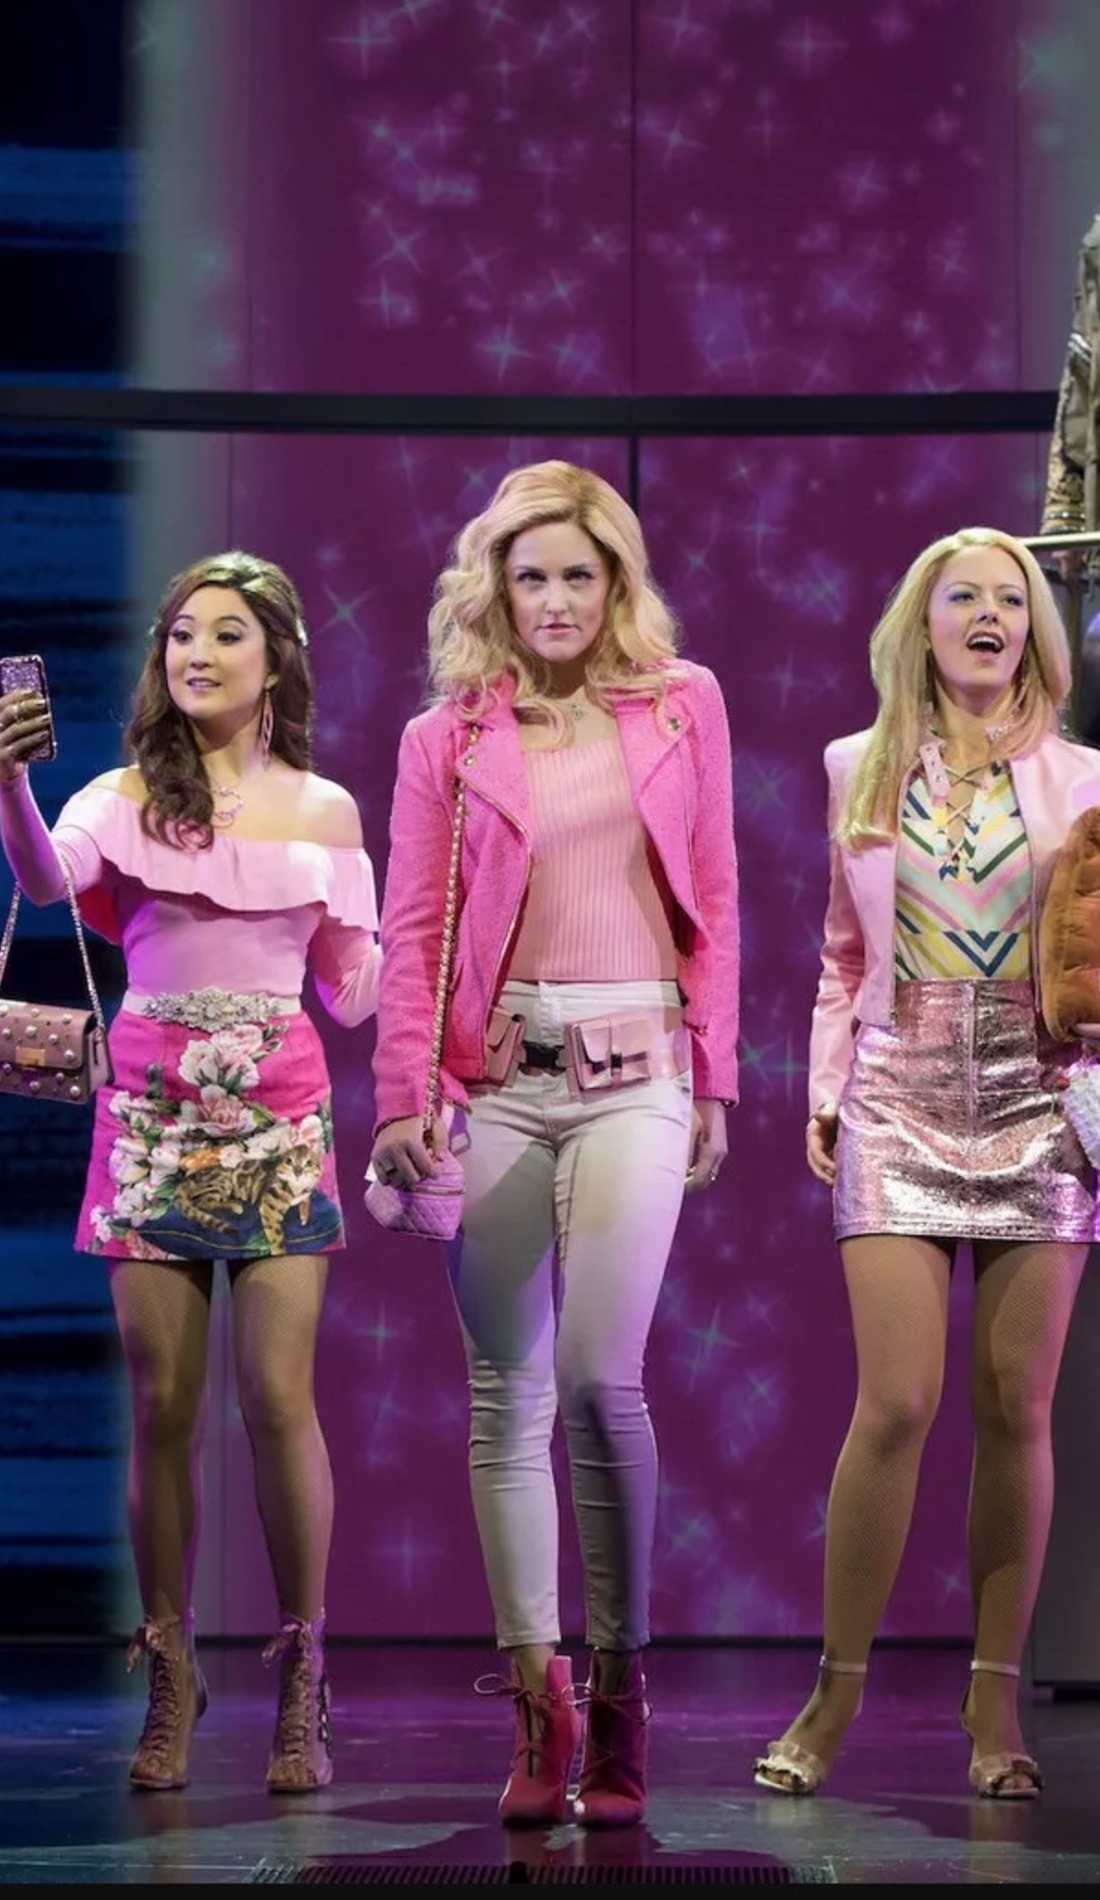 A Mean Girls live event